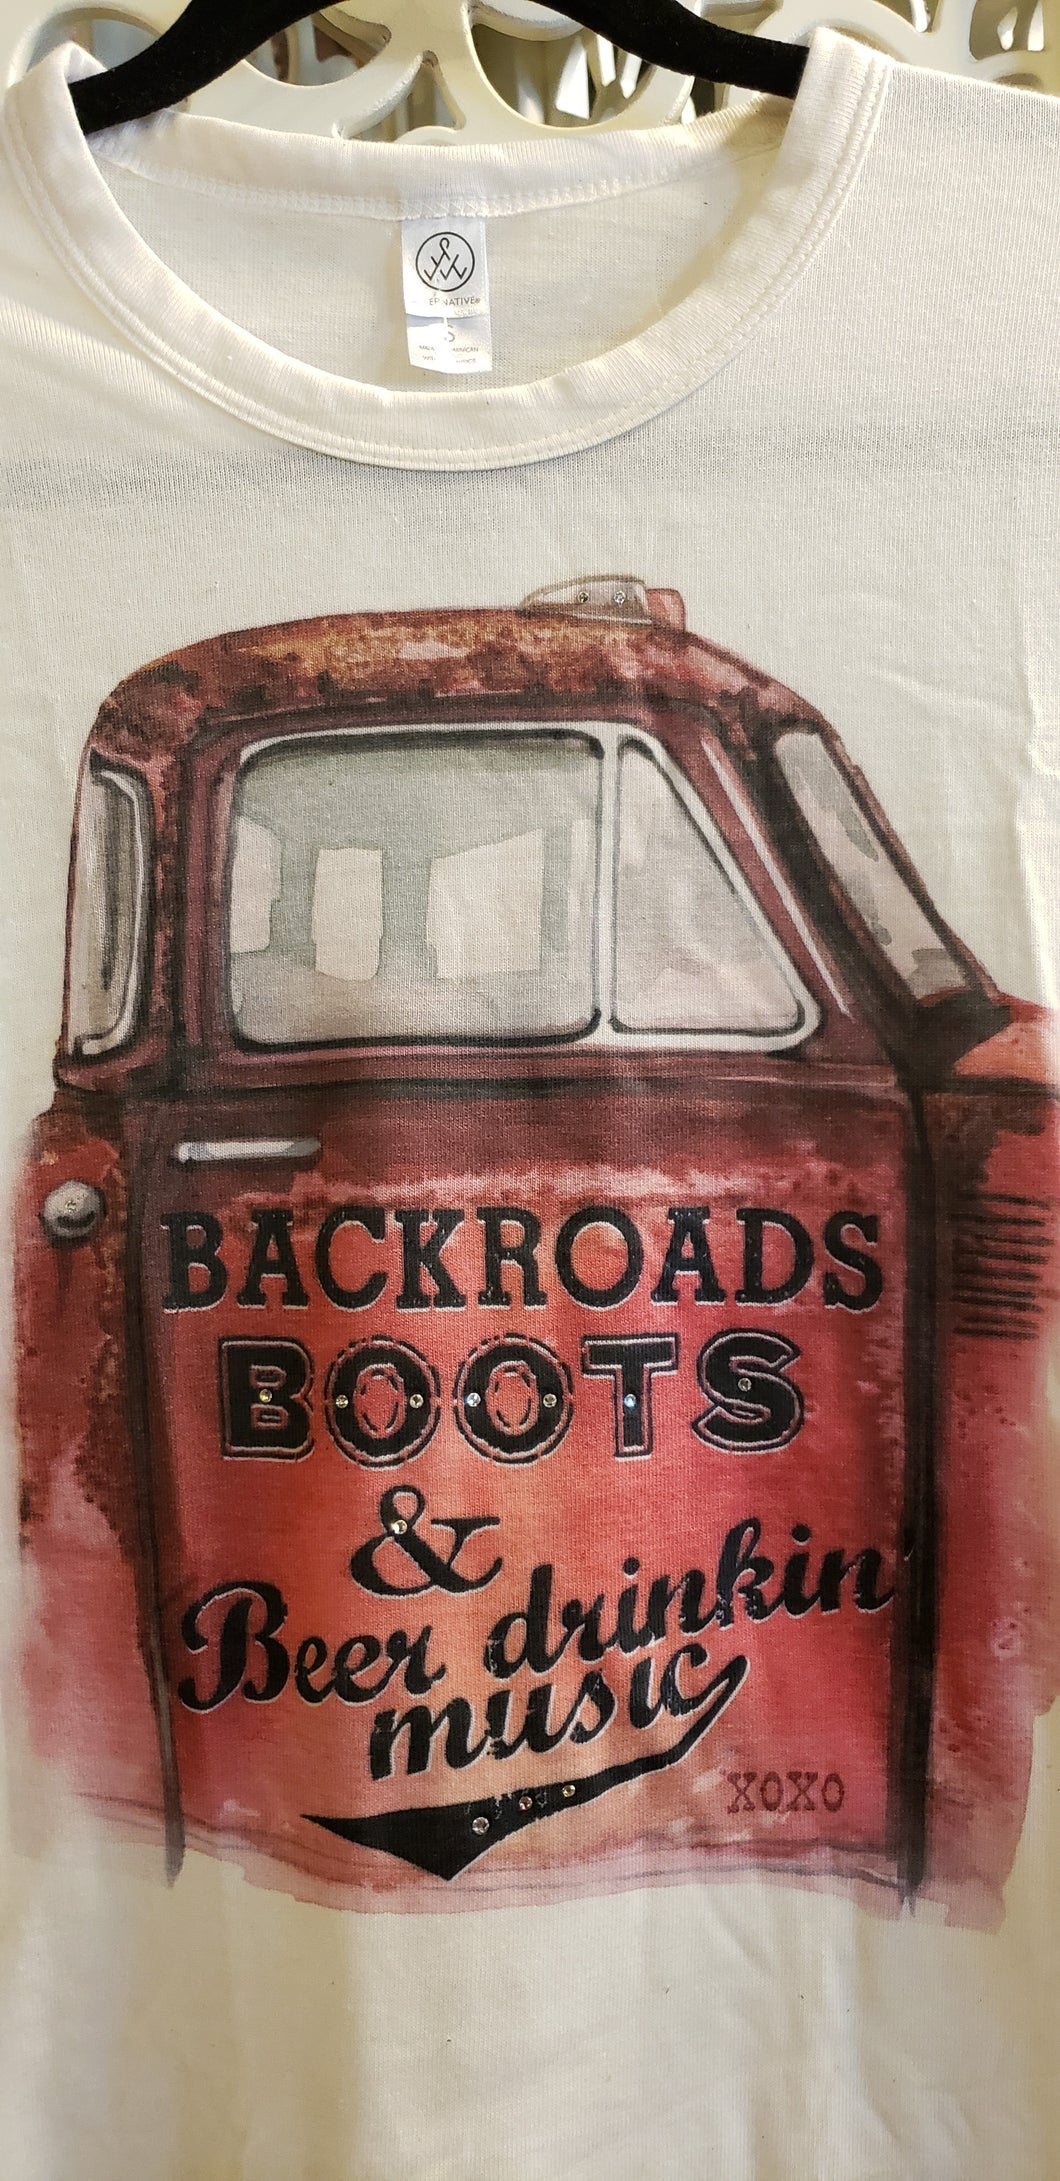 XOXO ART Backroads Boots Tee